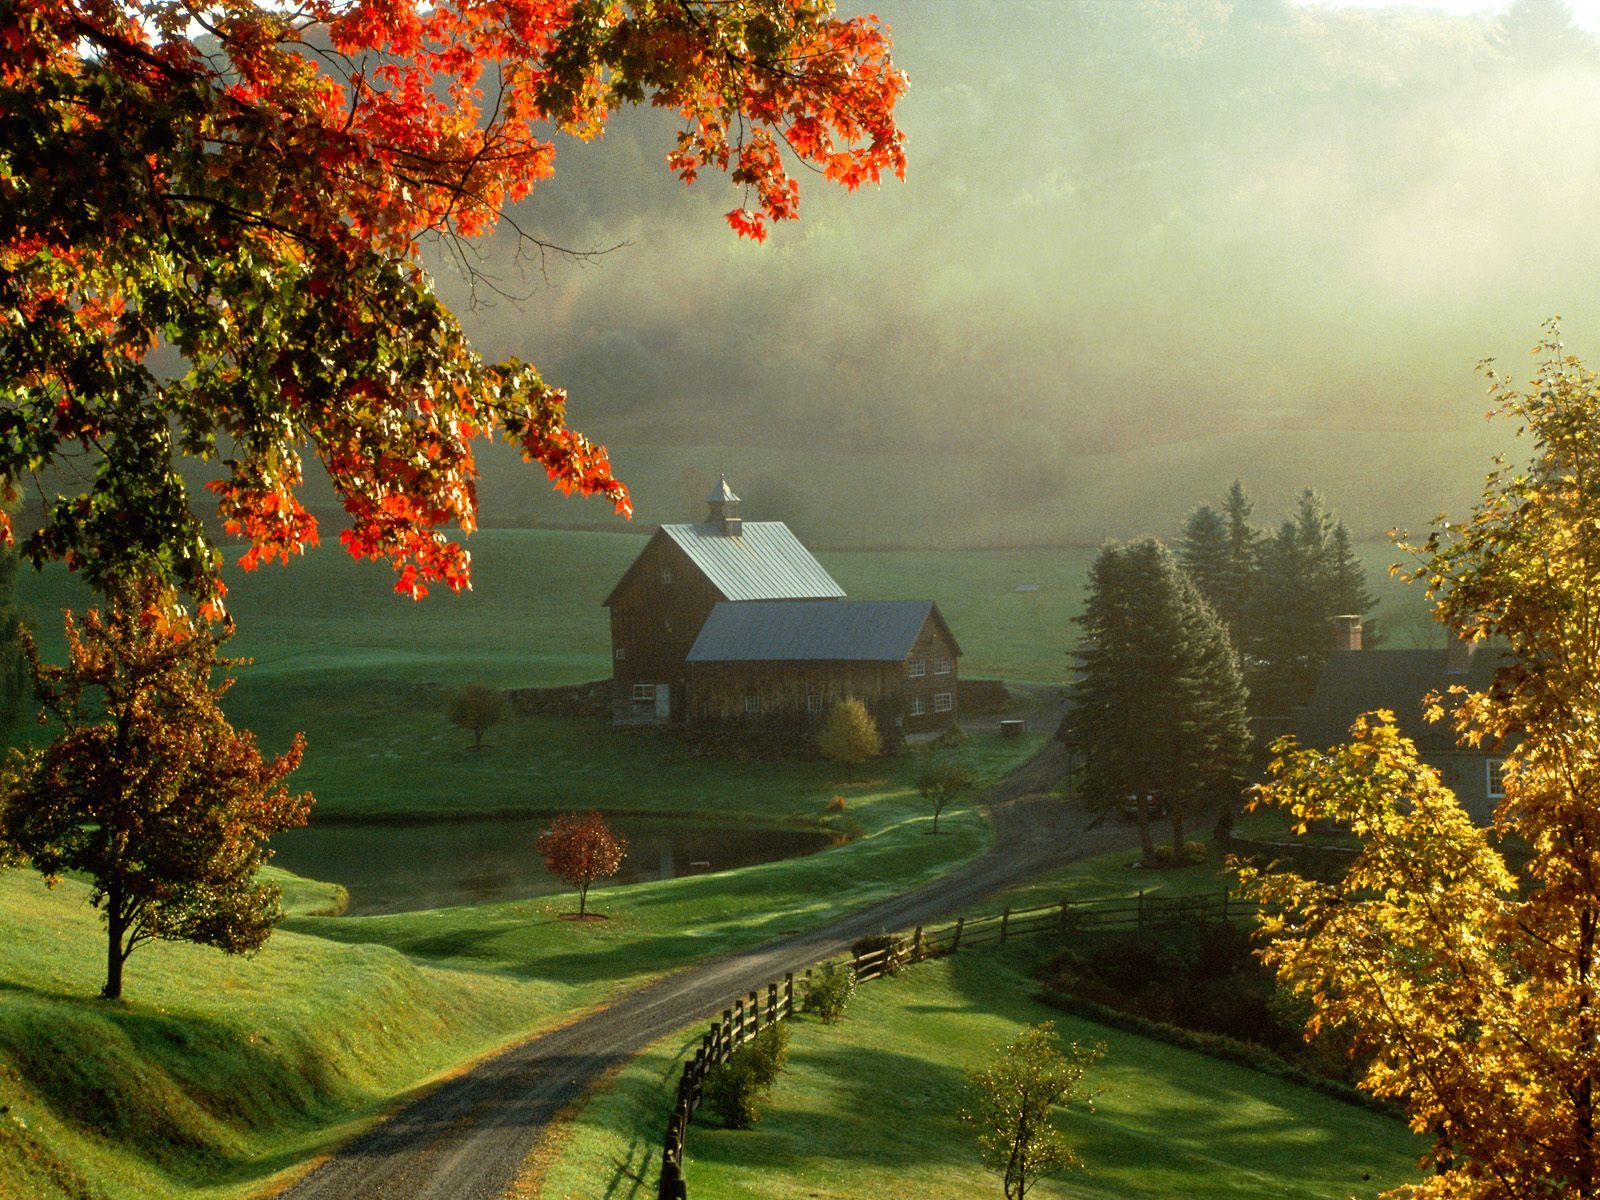 Cool Nature Hd Widescreen Backgrounds Wallpapers Cool Nature Wallpaper Want This Picture On My Desktop Beautiful Farm Beautiful Places Woodstock Vermont